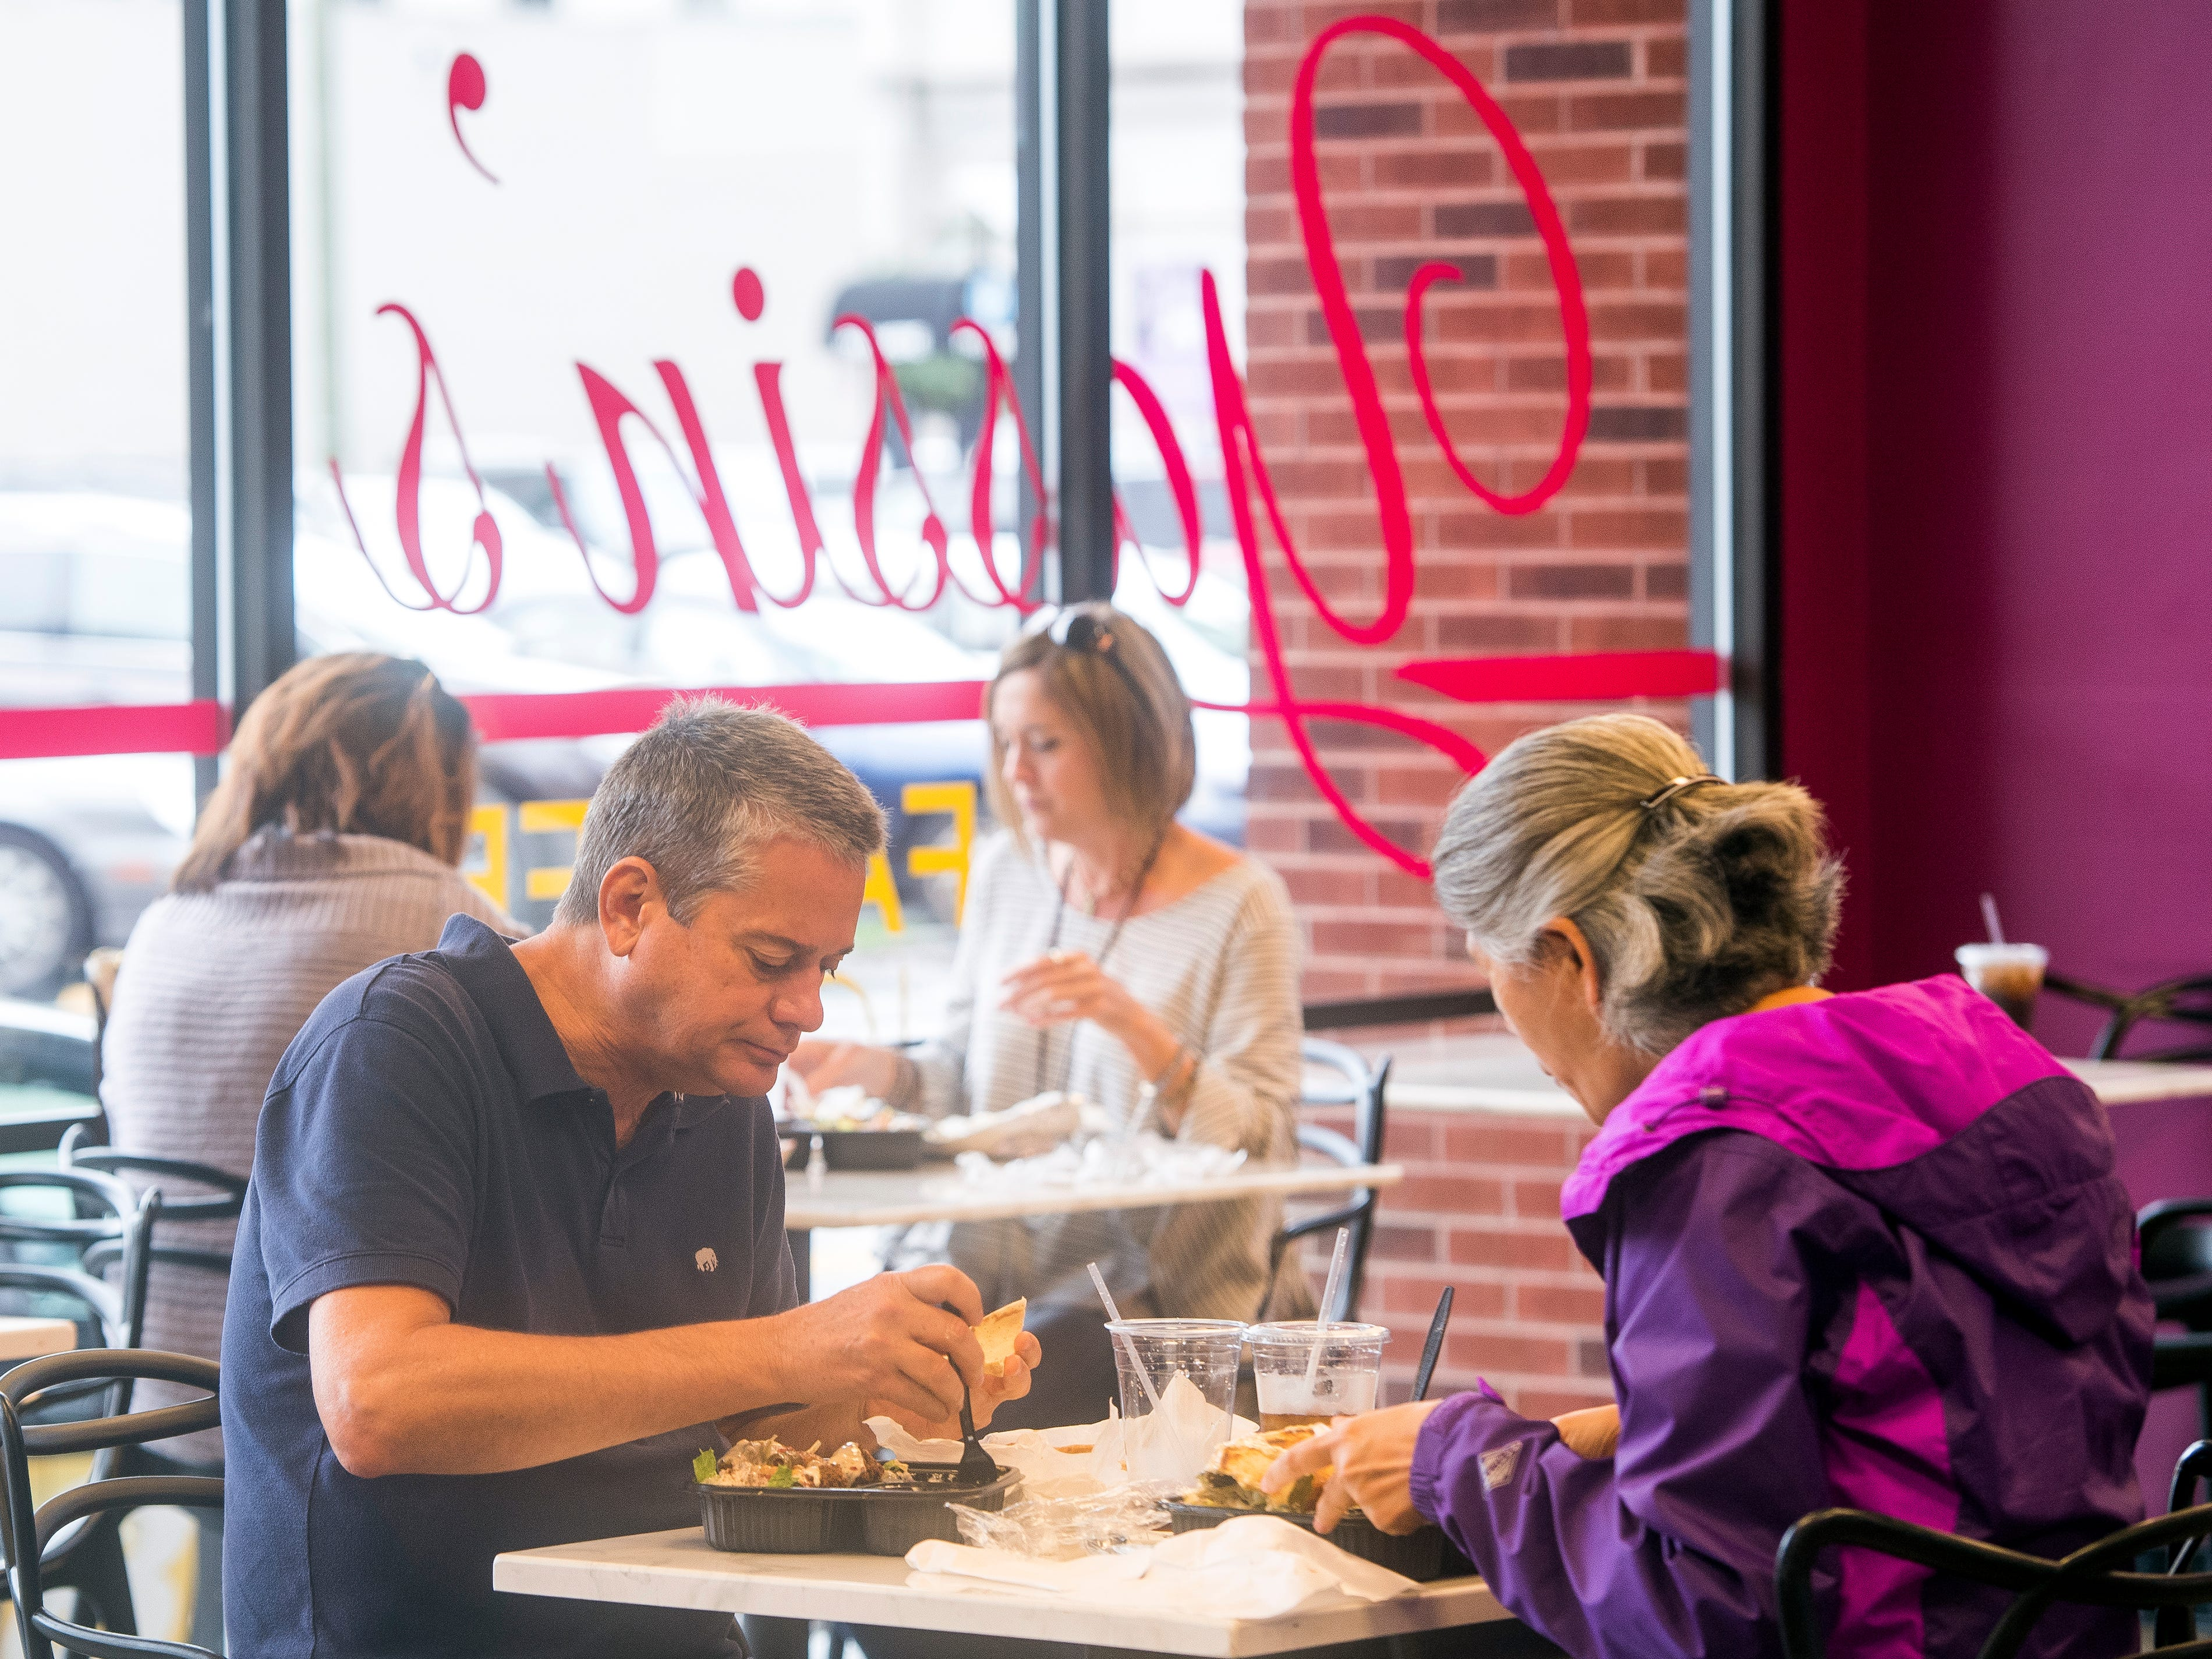 """Customers enjoy their lunch at Yassin's Falafel House in downtown Knoxville on Thursday, October 11, 2018. Yassin's Falafel House was named """"Nicest Place in America"""" by Reader's Digest."""